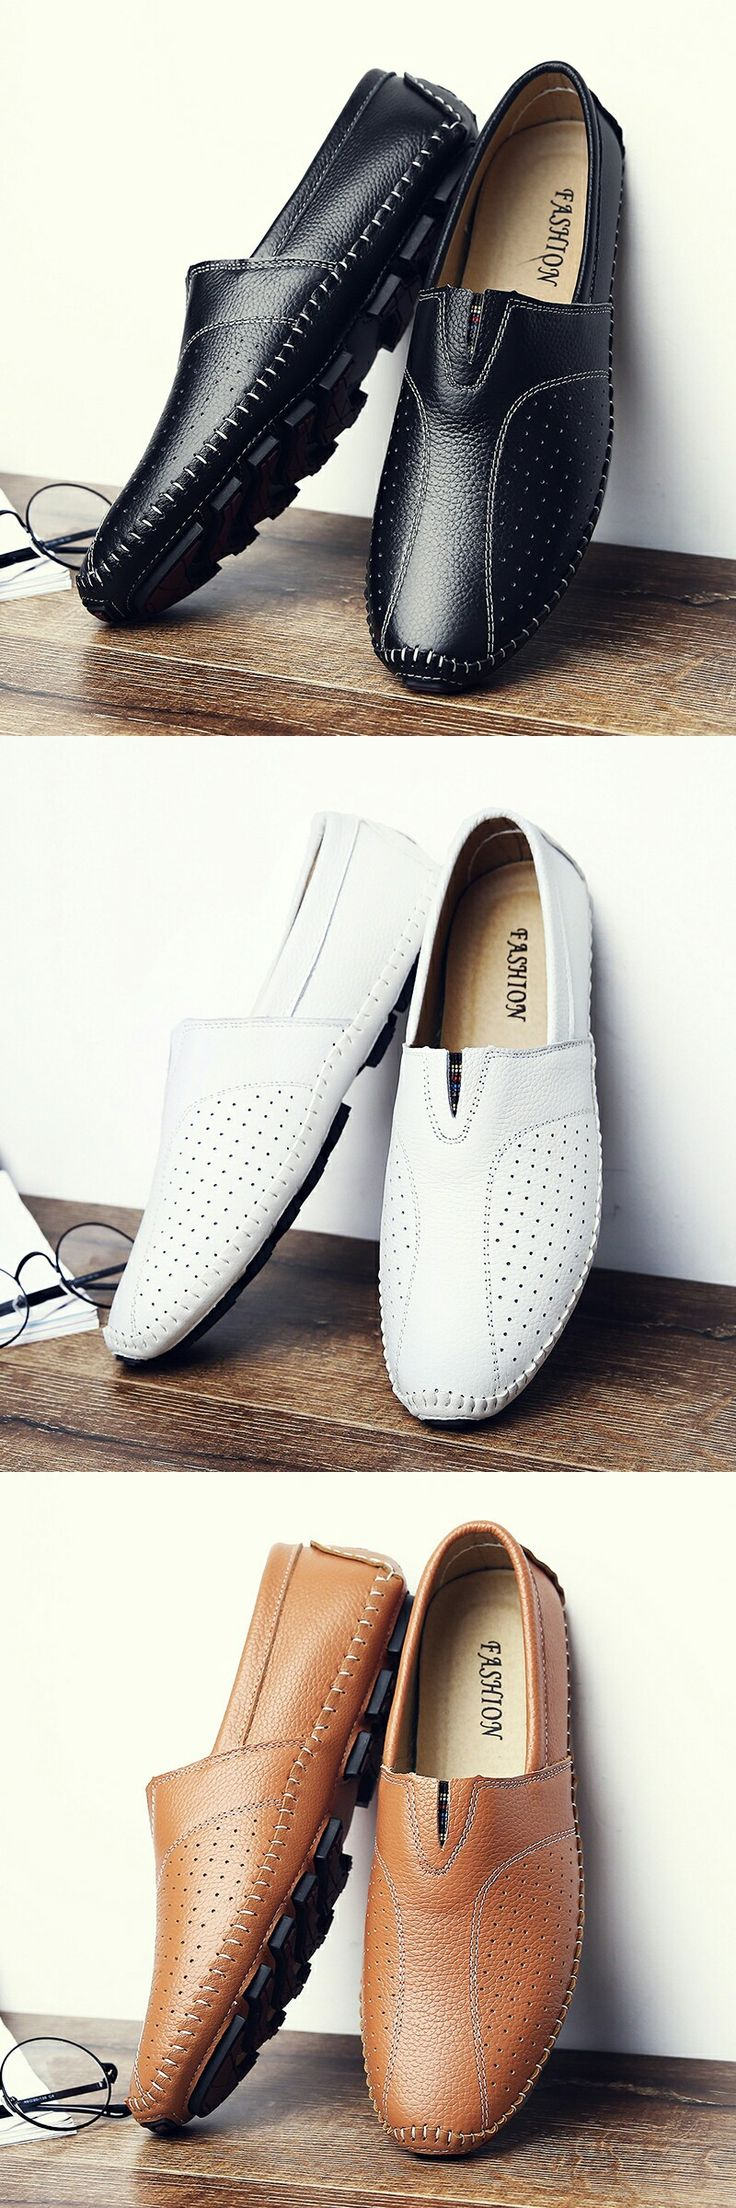 US $28.5 <Click to buy> Comfortable Handmade Leather Casual Men's Flats